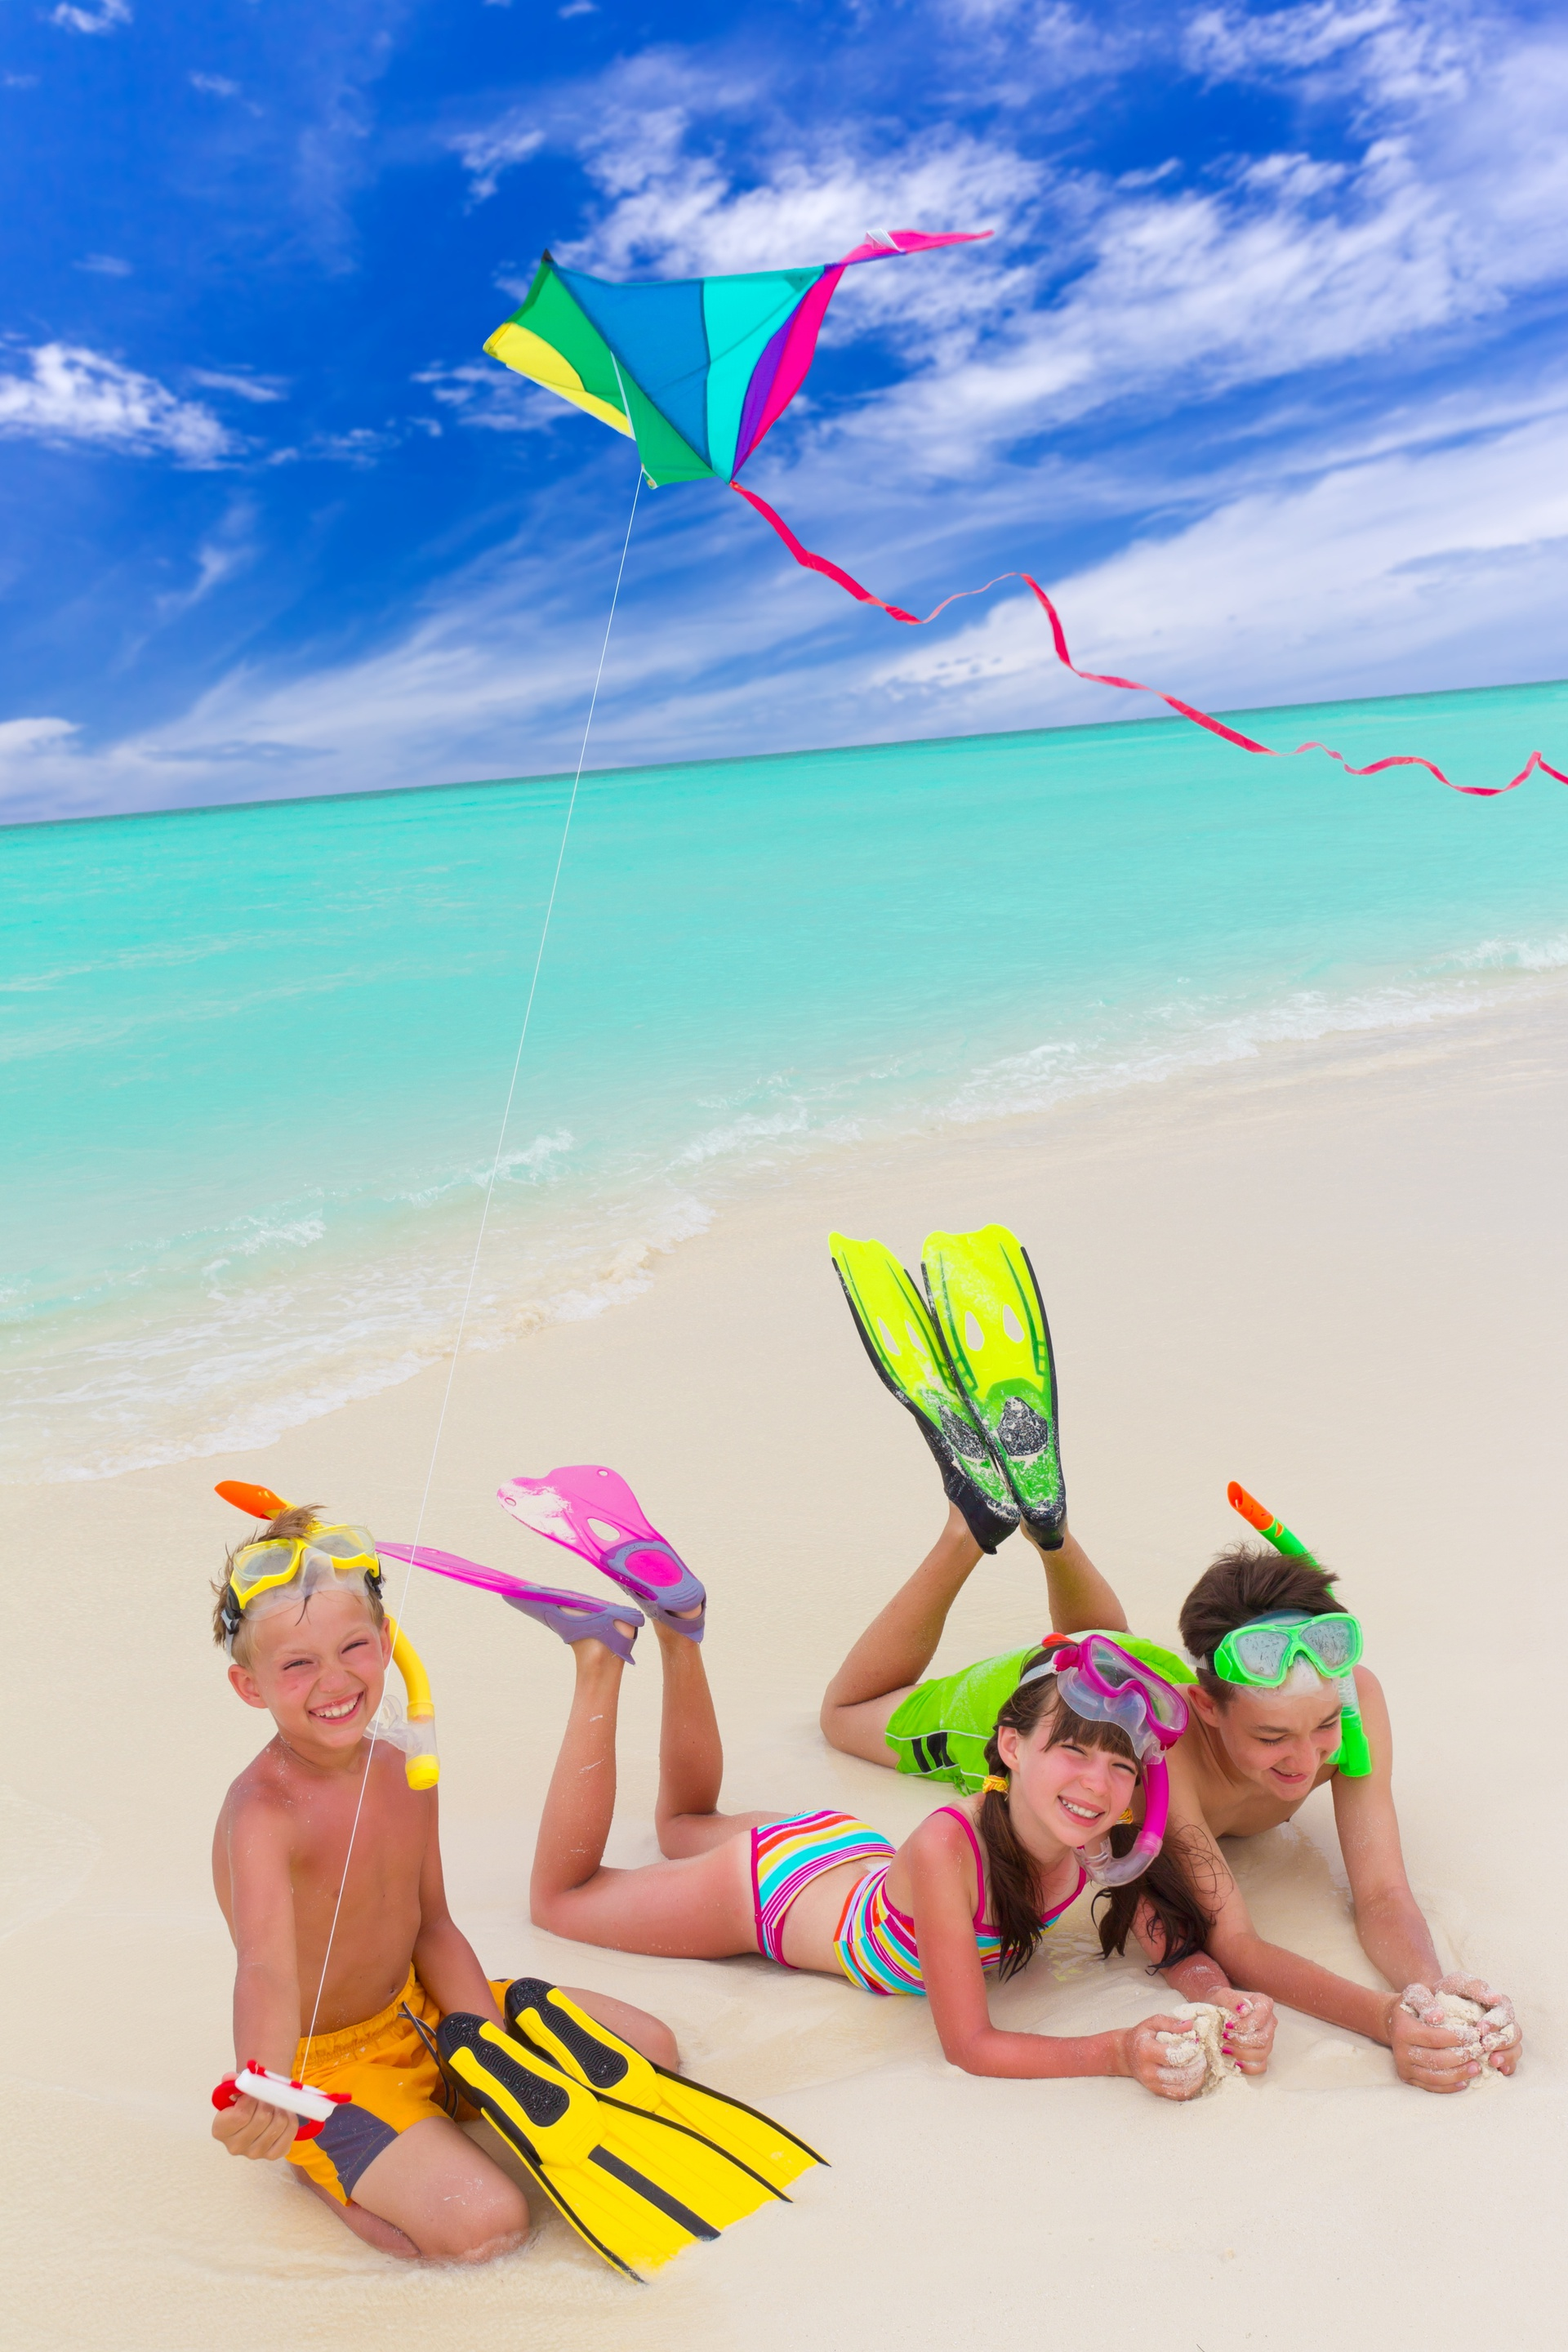 Maldives is one of the top destinations for families this UAE National Day holiday